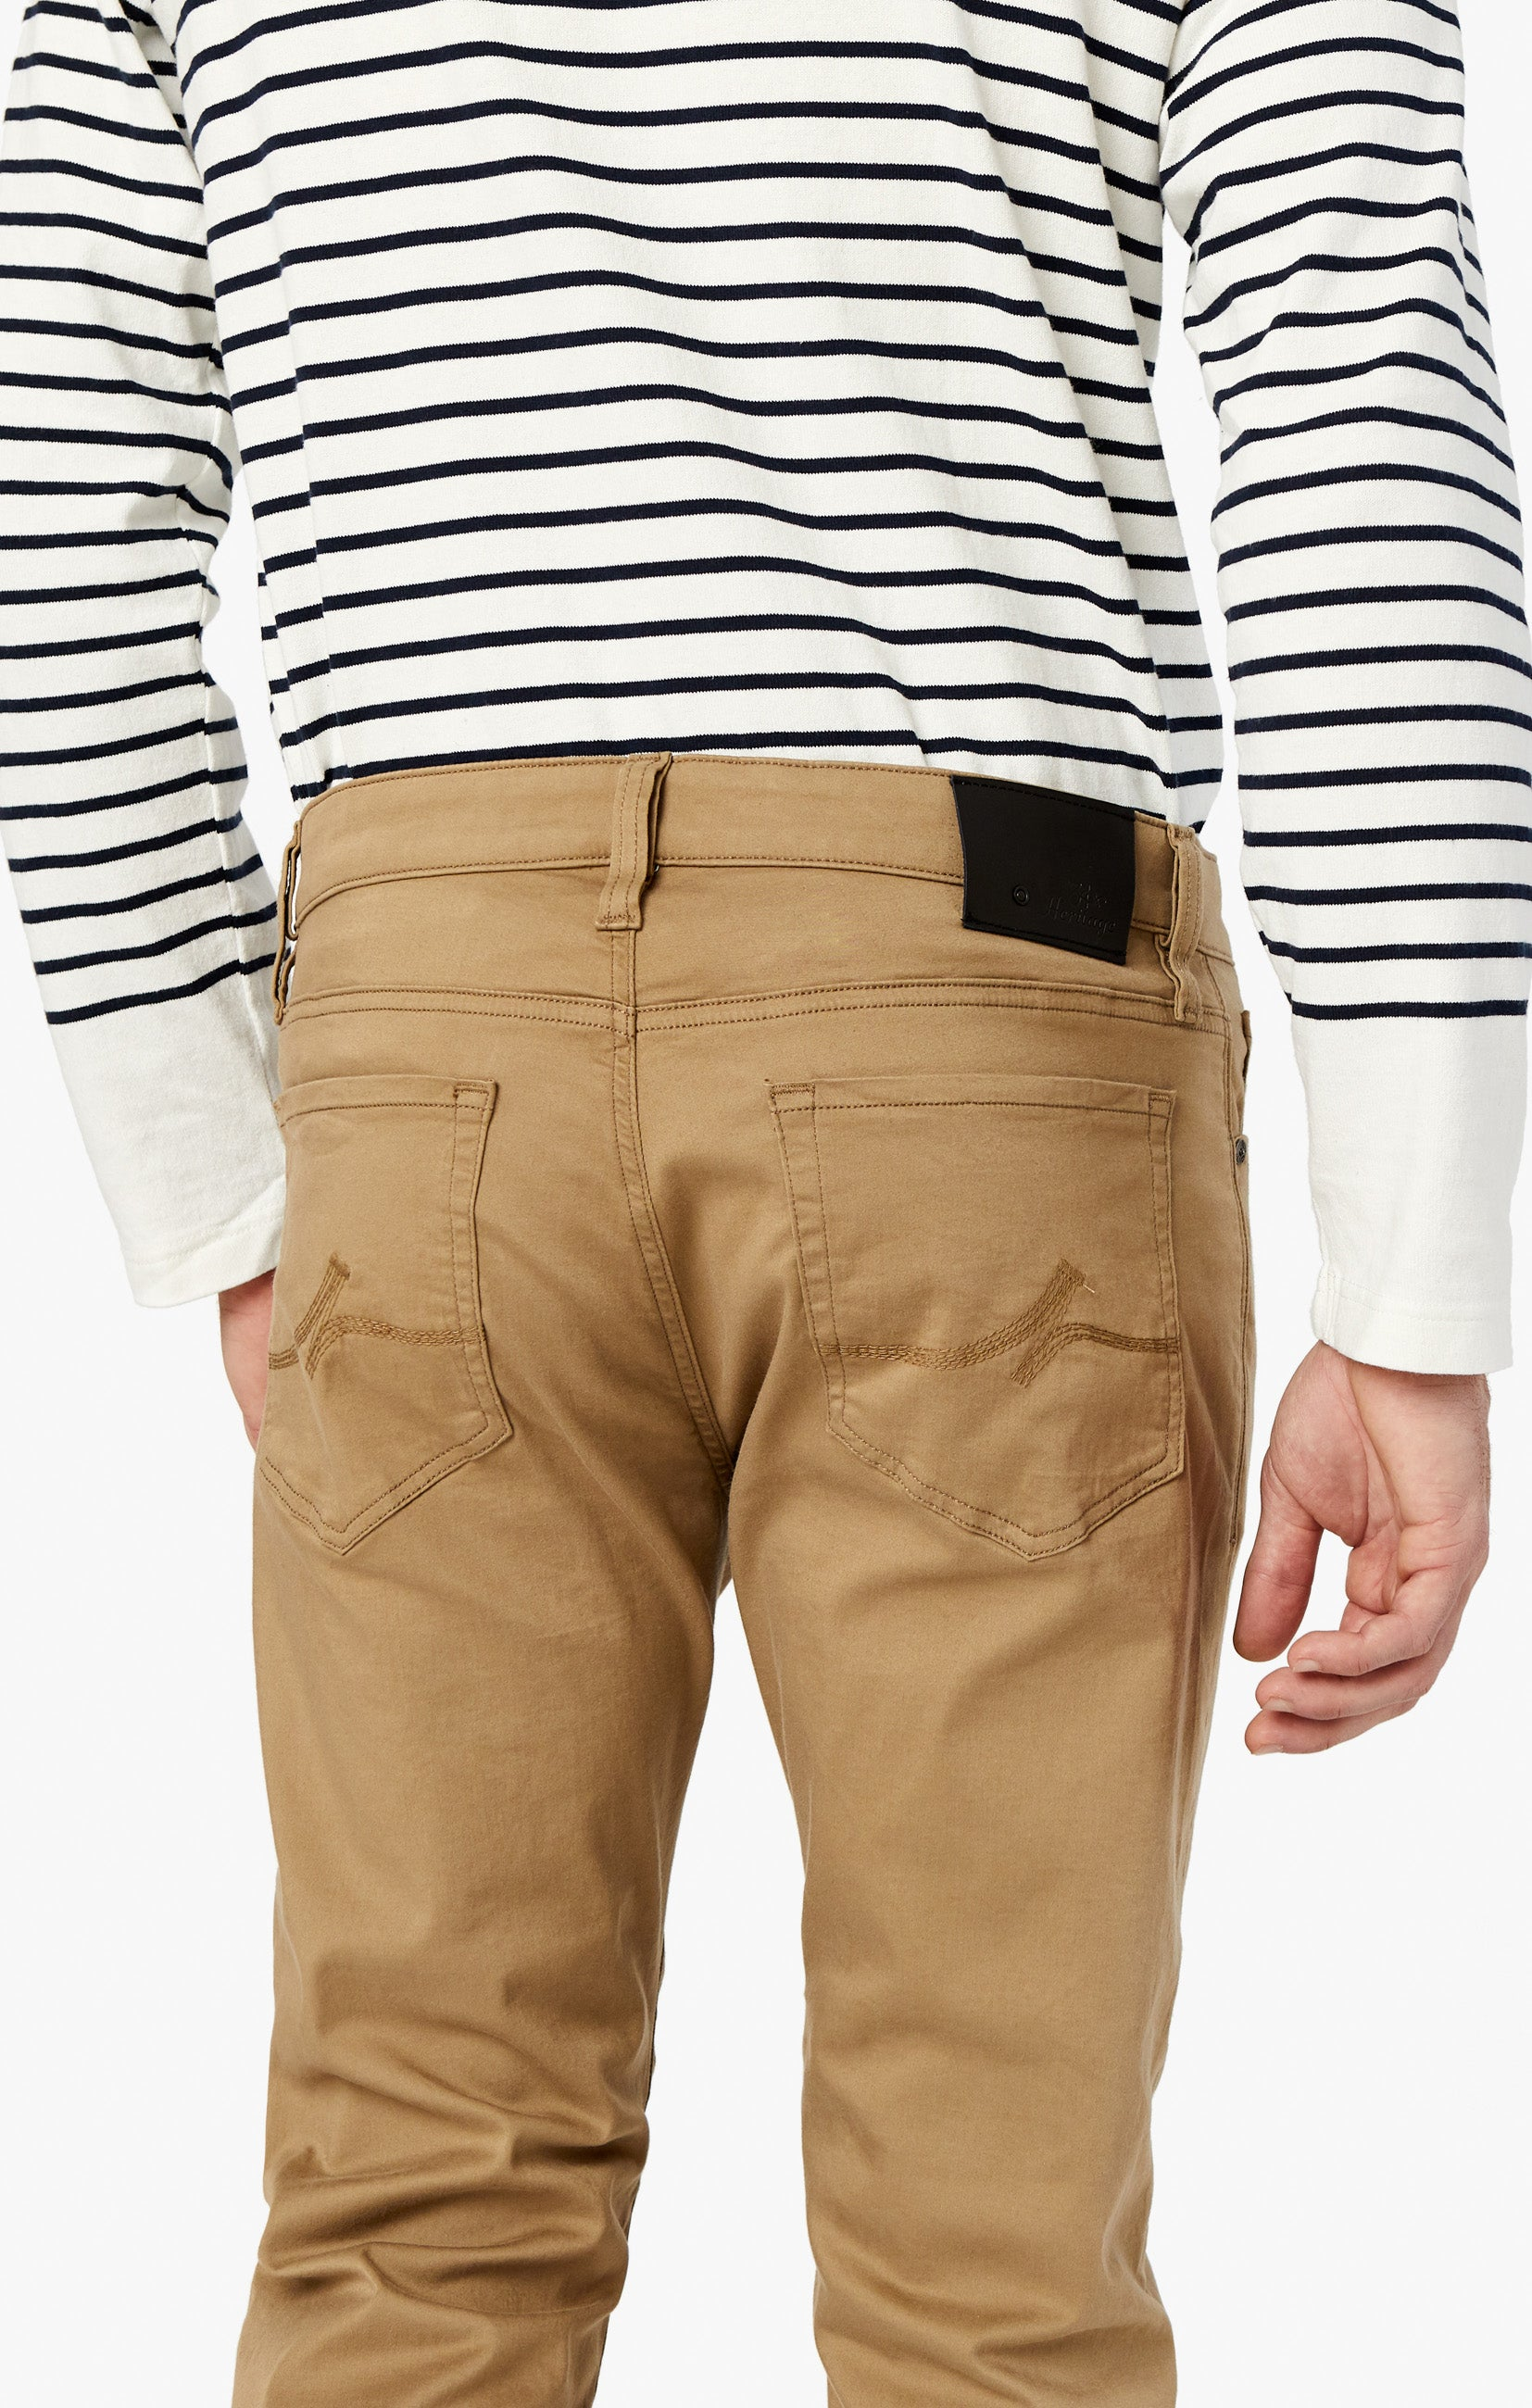 Courage Straight Leg Pants In Khaki Twill Image 7